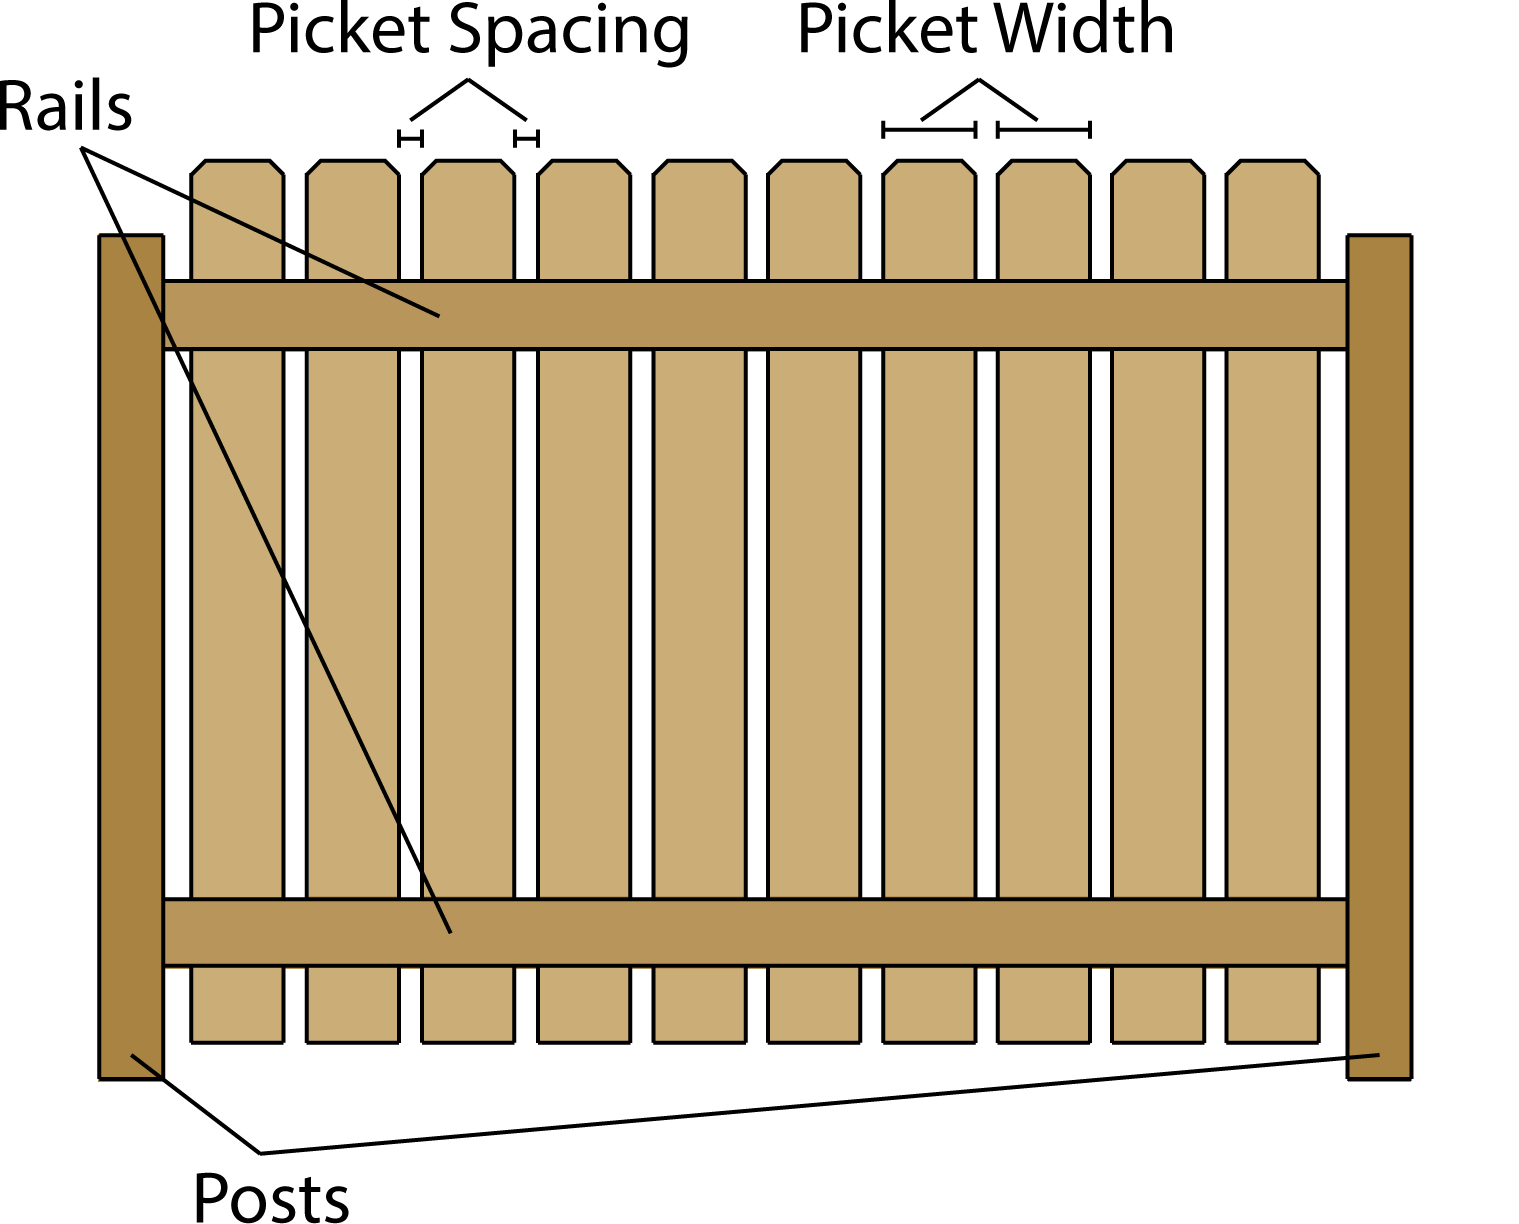 Fence Calculator